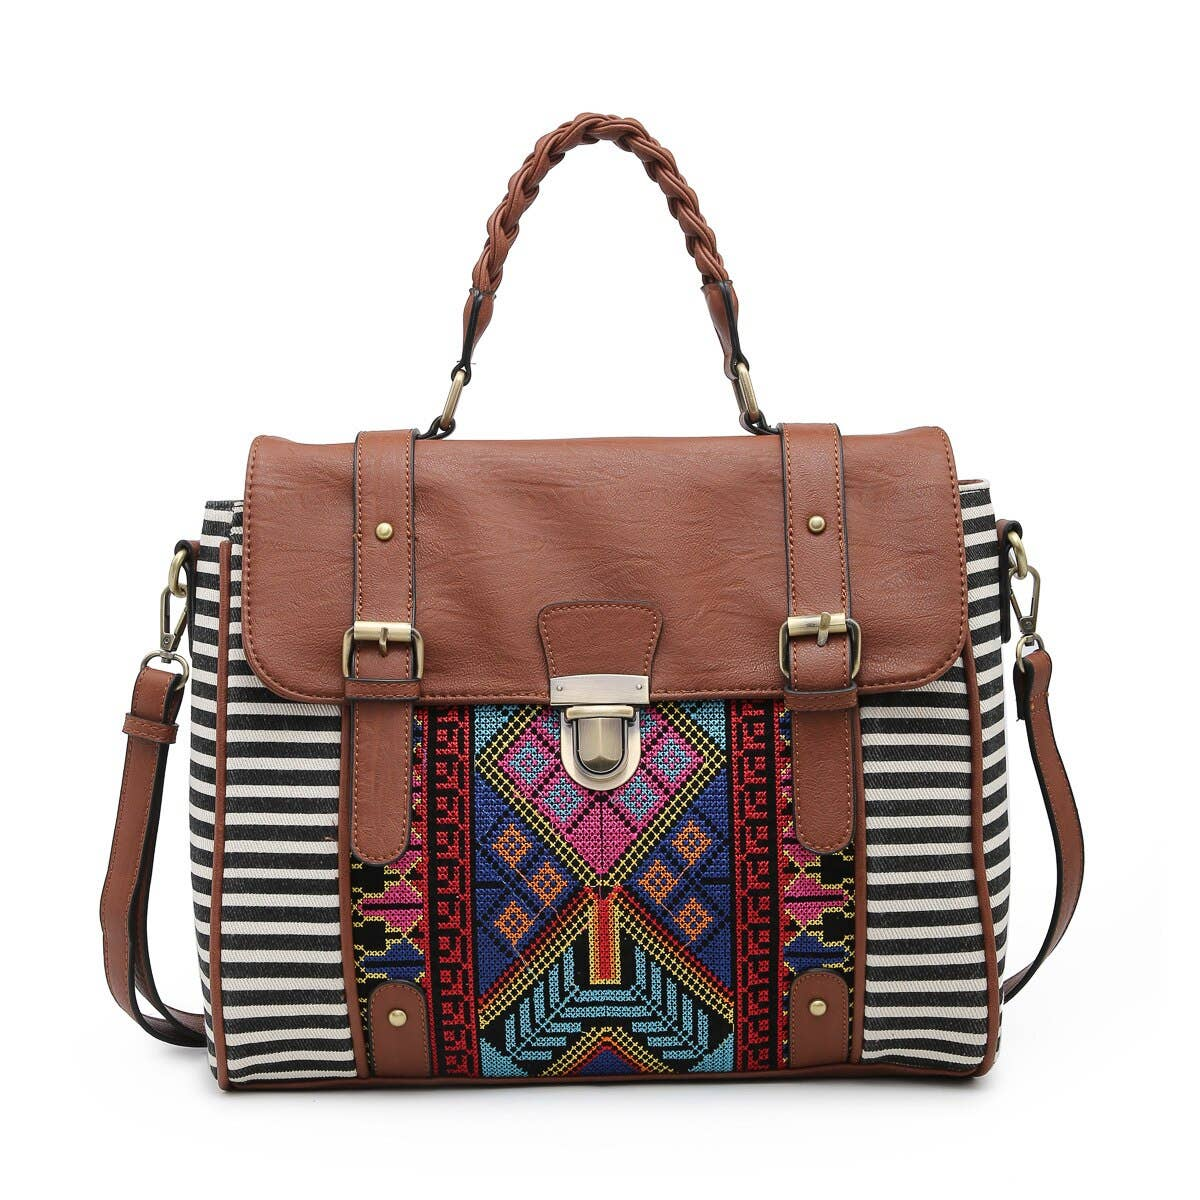 M1944 Harlow Aztec Embroidered Satchel w/ Braided Handle